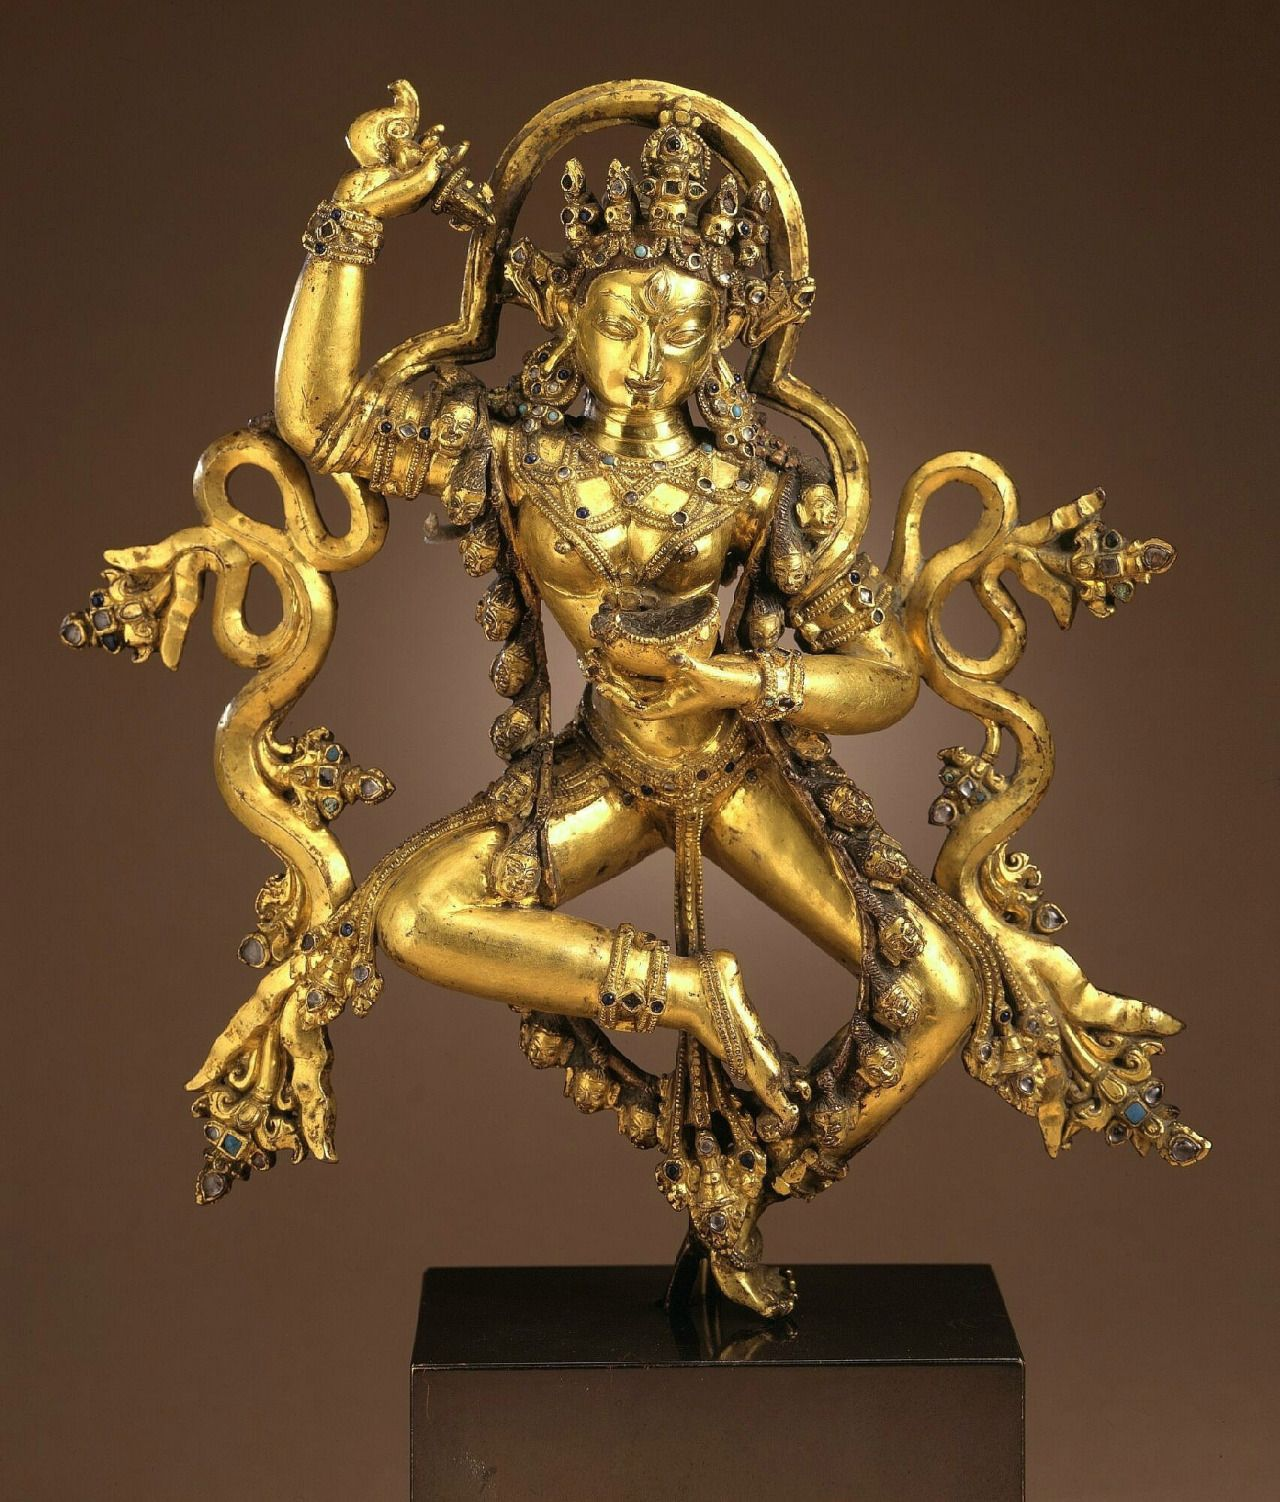 16th century, Central Tibet, Densatil monastery, gilt copper alloy with stone inlay